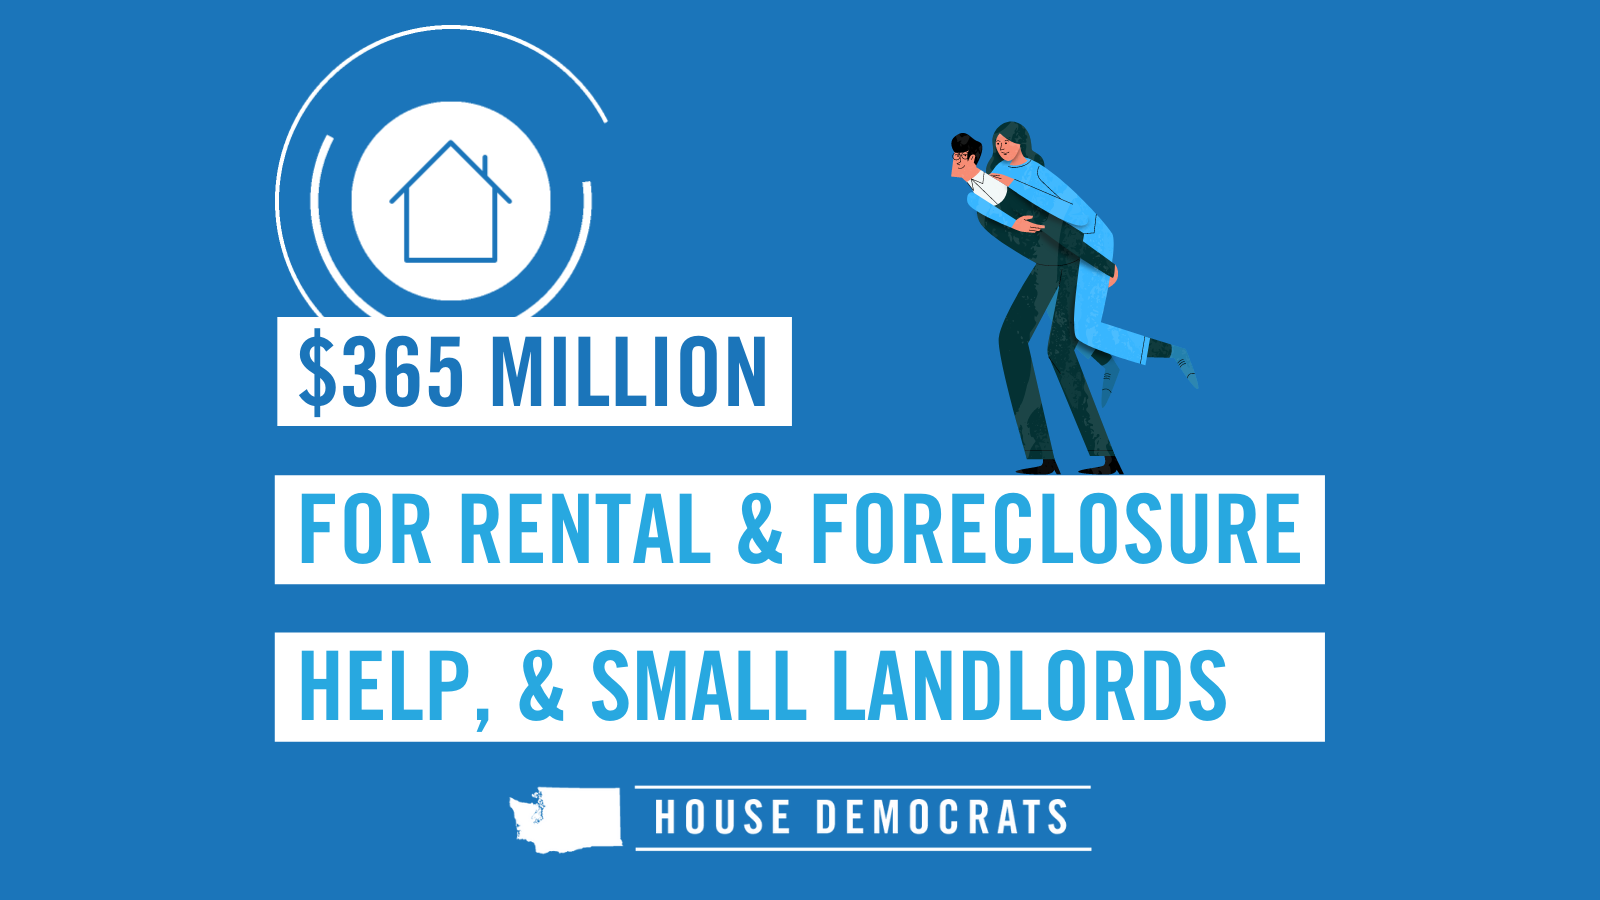 Slide that says $365 million for rental & foreclosure help & small landlords